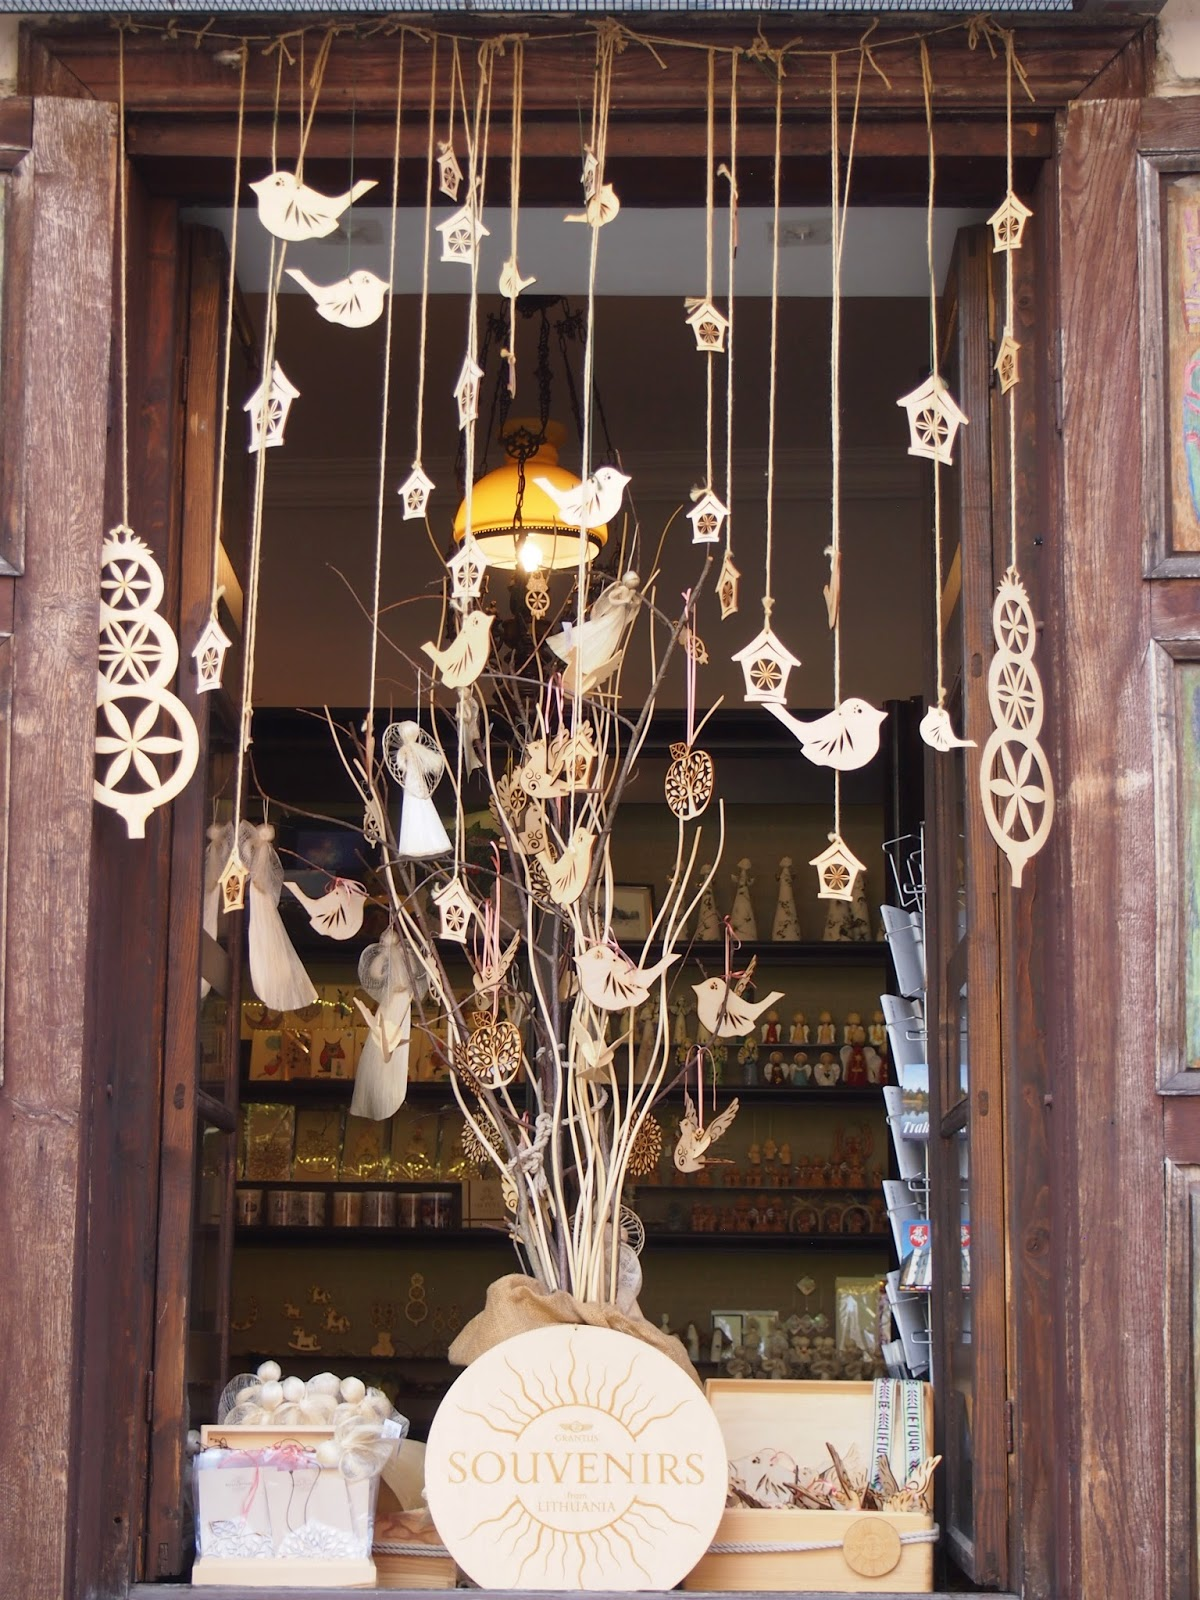 A shop window selling wooden ornaments in the Kaunas Old Town